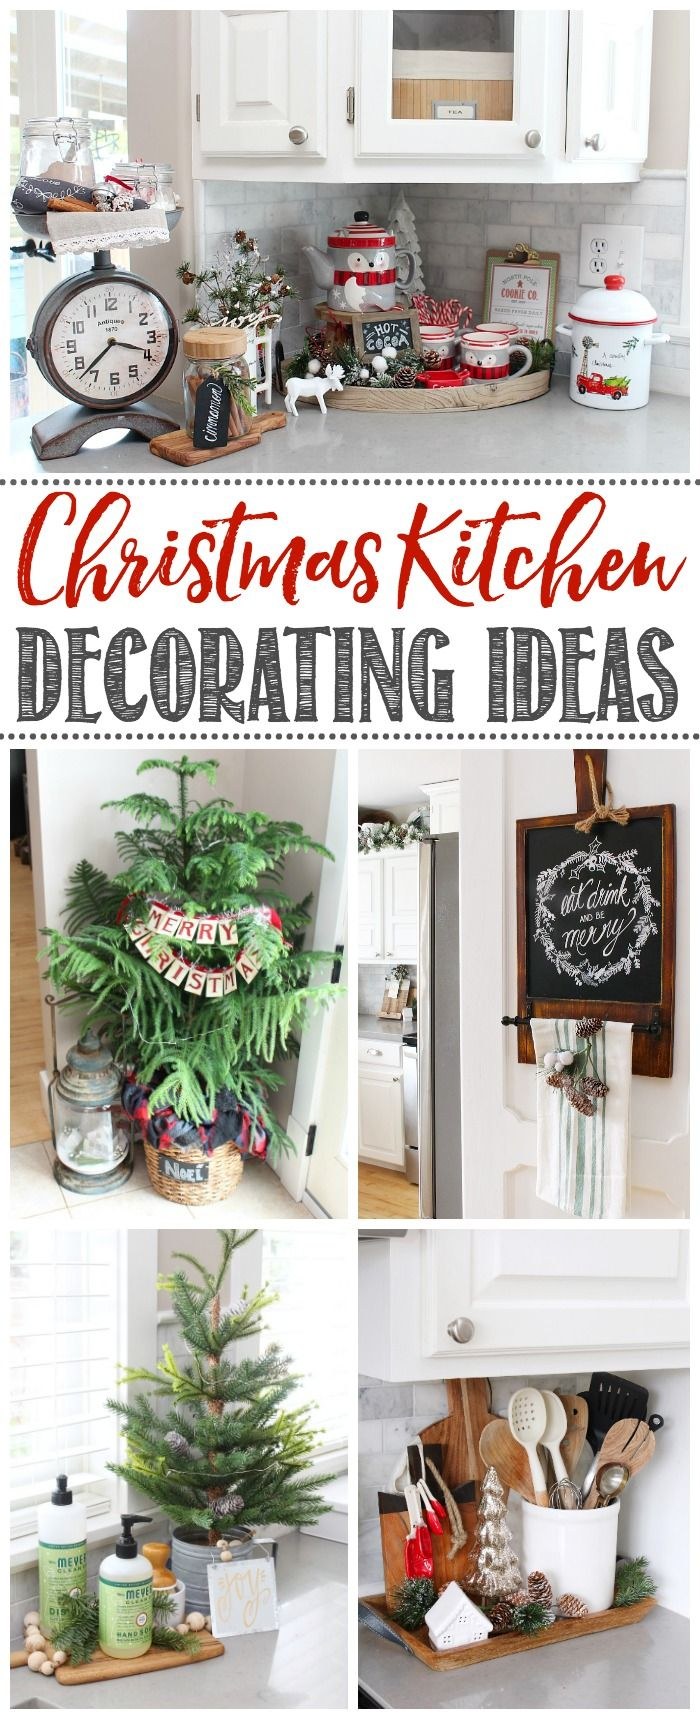 Beautiful Christmas Kitchen Decorating Ideas.  Cute and simple ideas to help you decorate your own home.